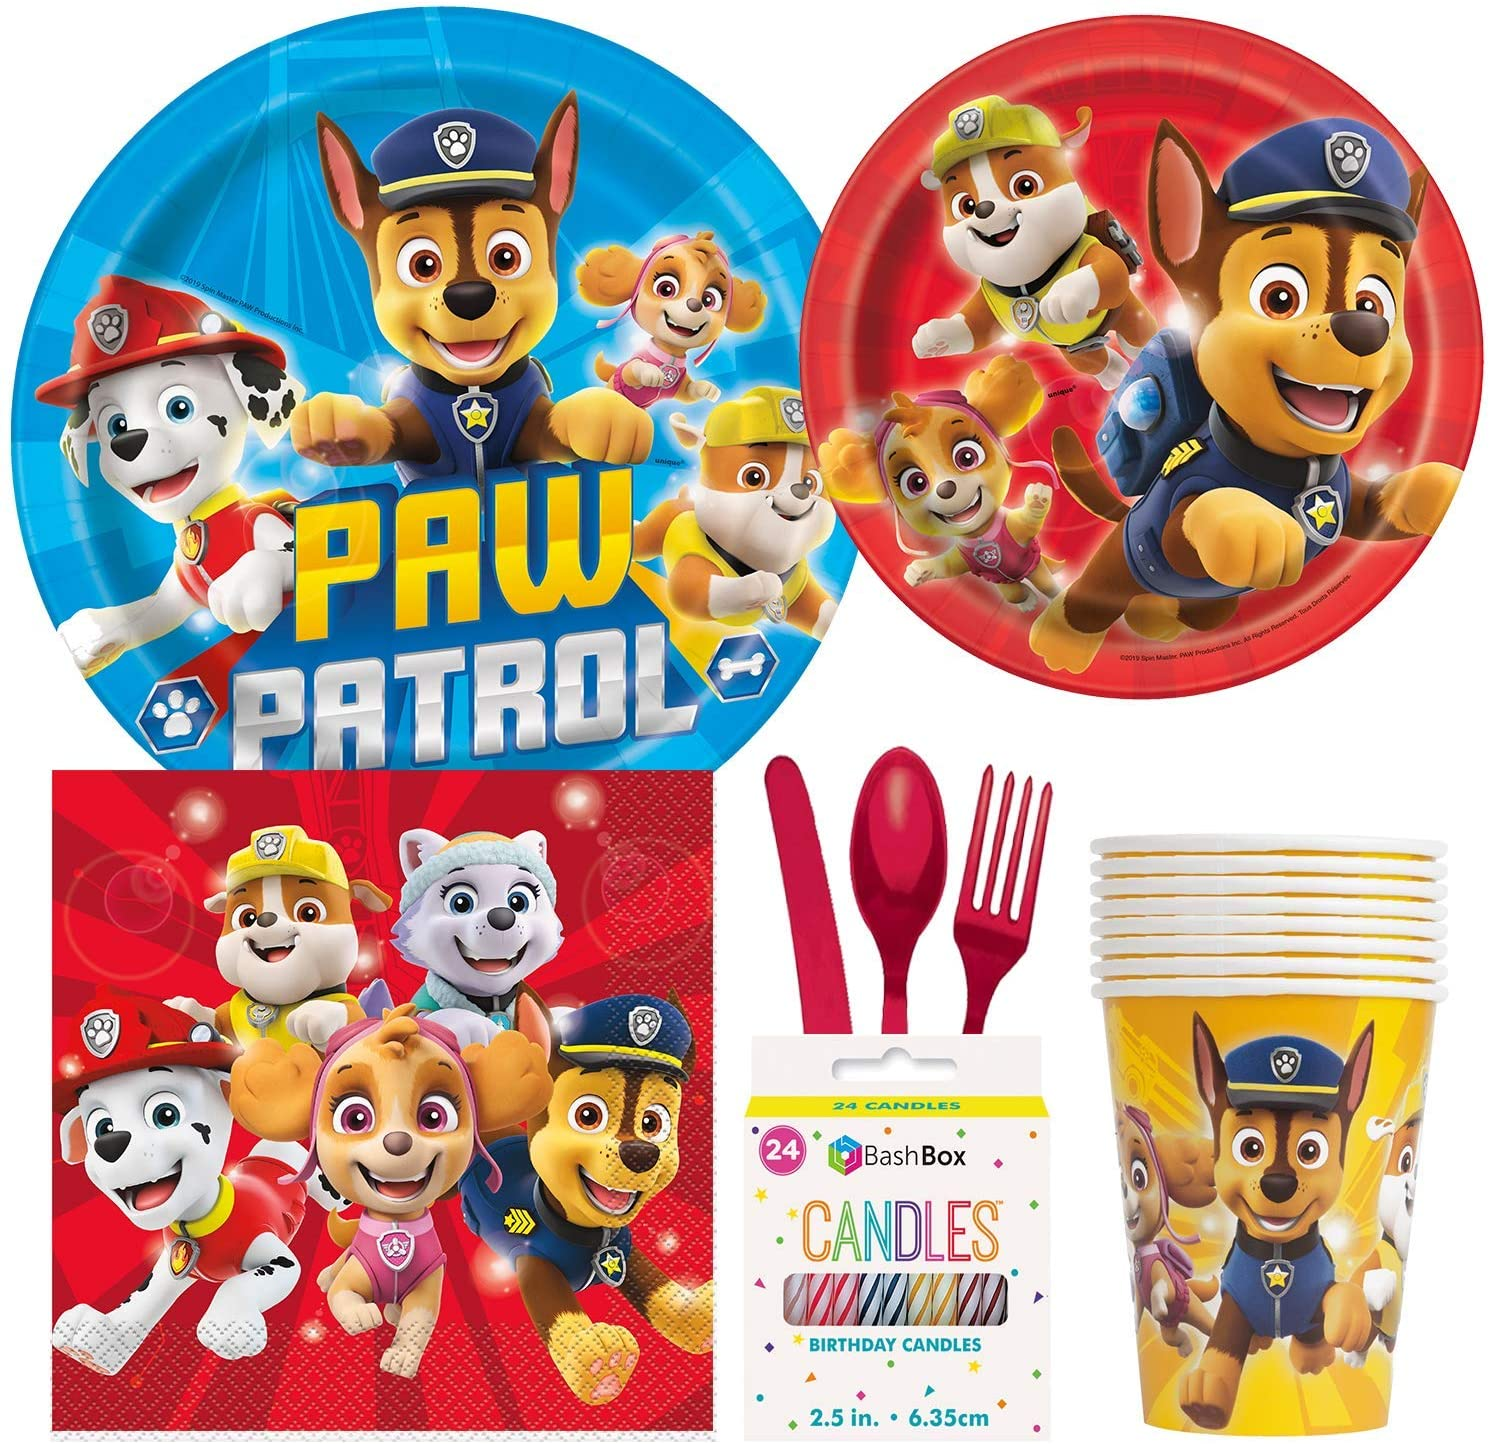 BashBox Paw Patrol Birthday Party Supplies Pack Including Cake & Lunch Plates, Cutlery, Cups & Napkins for 8 Guests Plus Bonus Candles